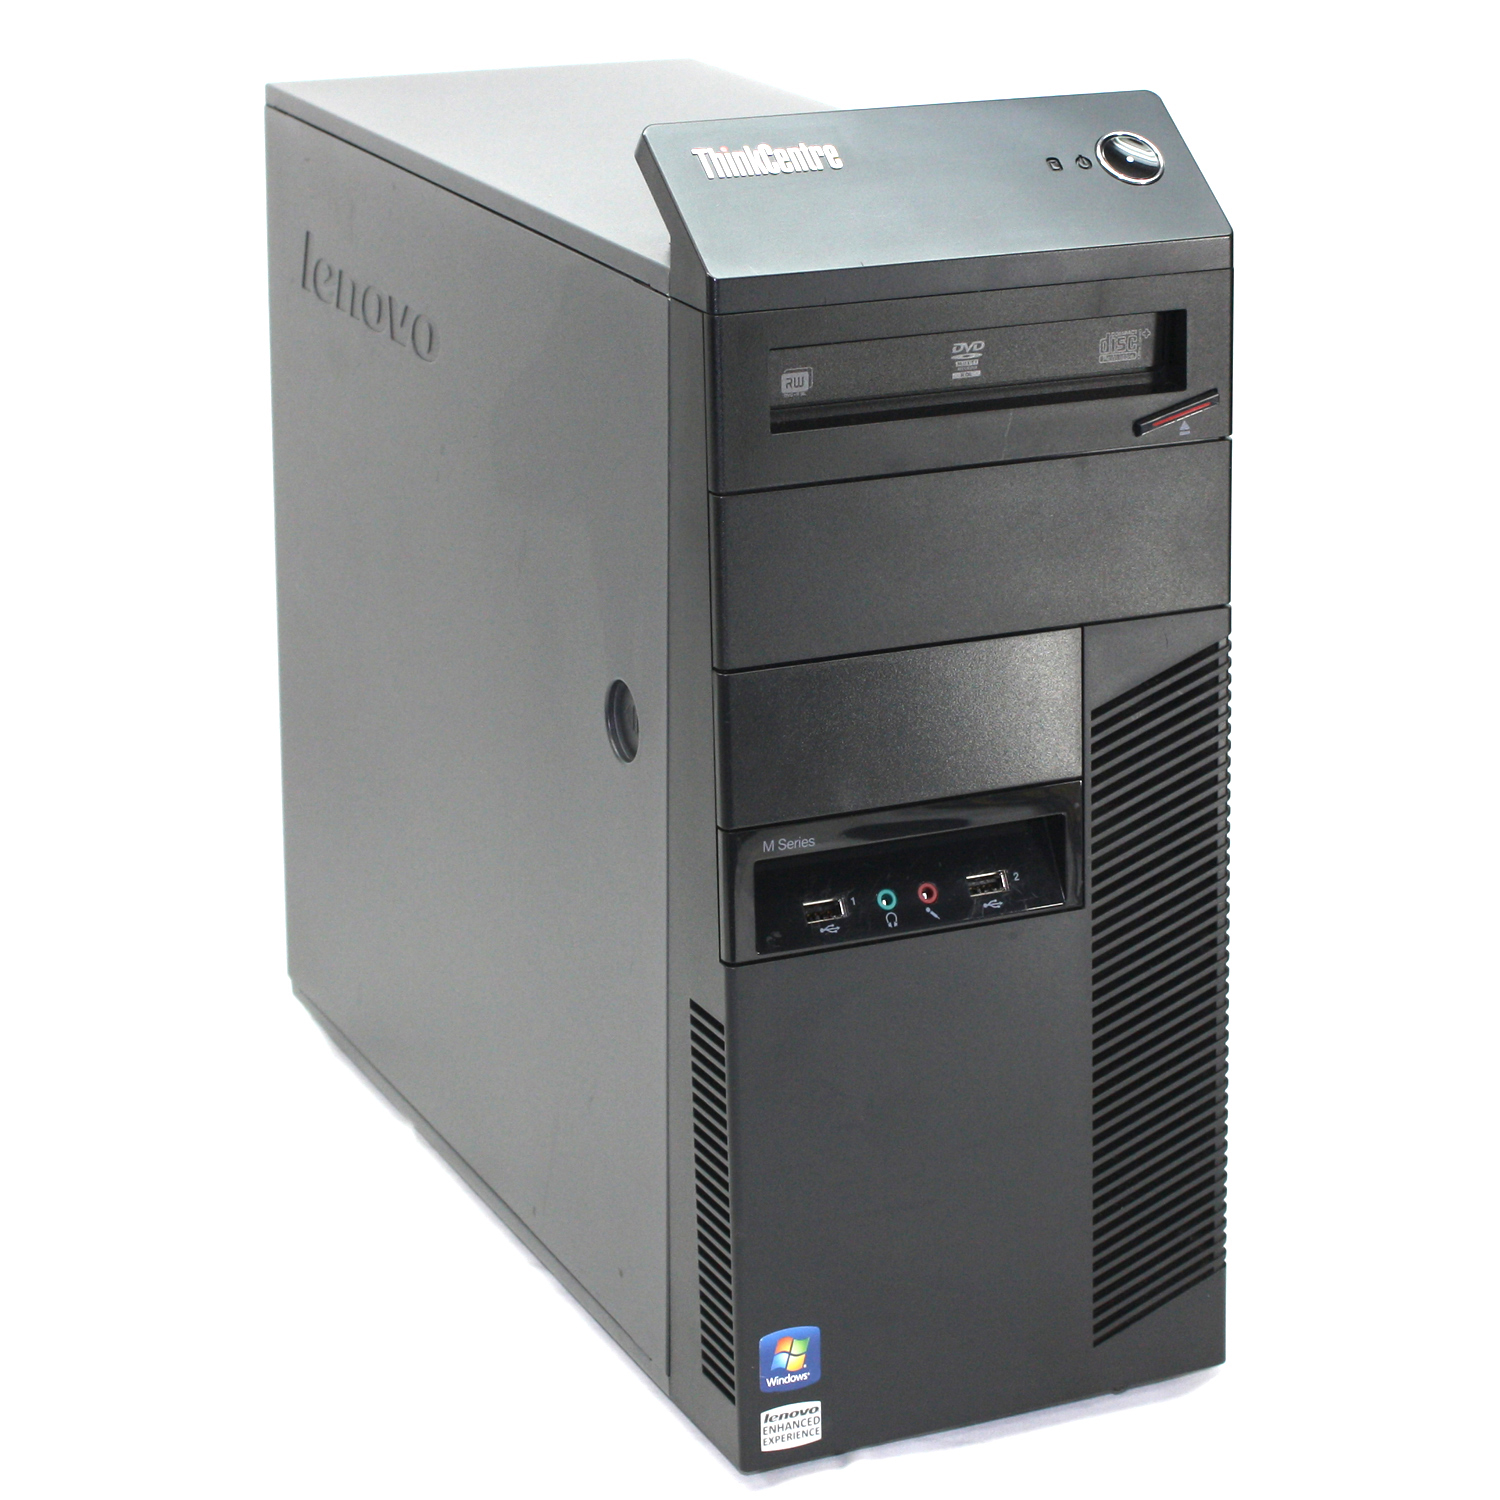 Lenovo ThinkCentre M90 Refurbished Mini Tower - Intel Quad Core i7 up to 3.6GHz, 16GB RAM, 1TB HDD, Windows 10 Pro (Monitor Not Included)